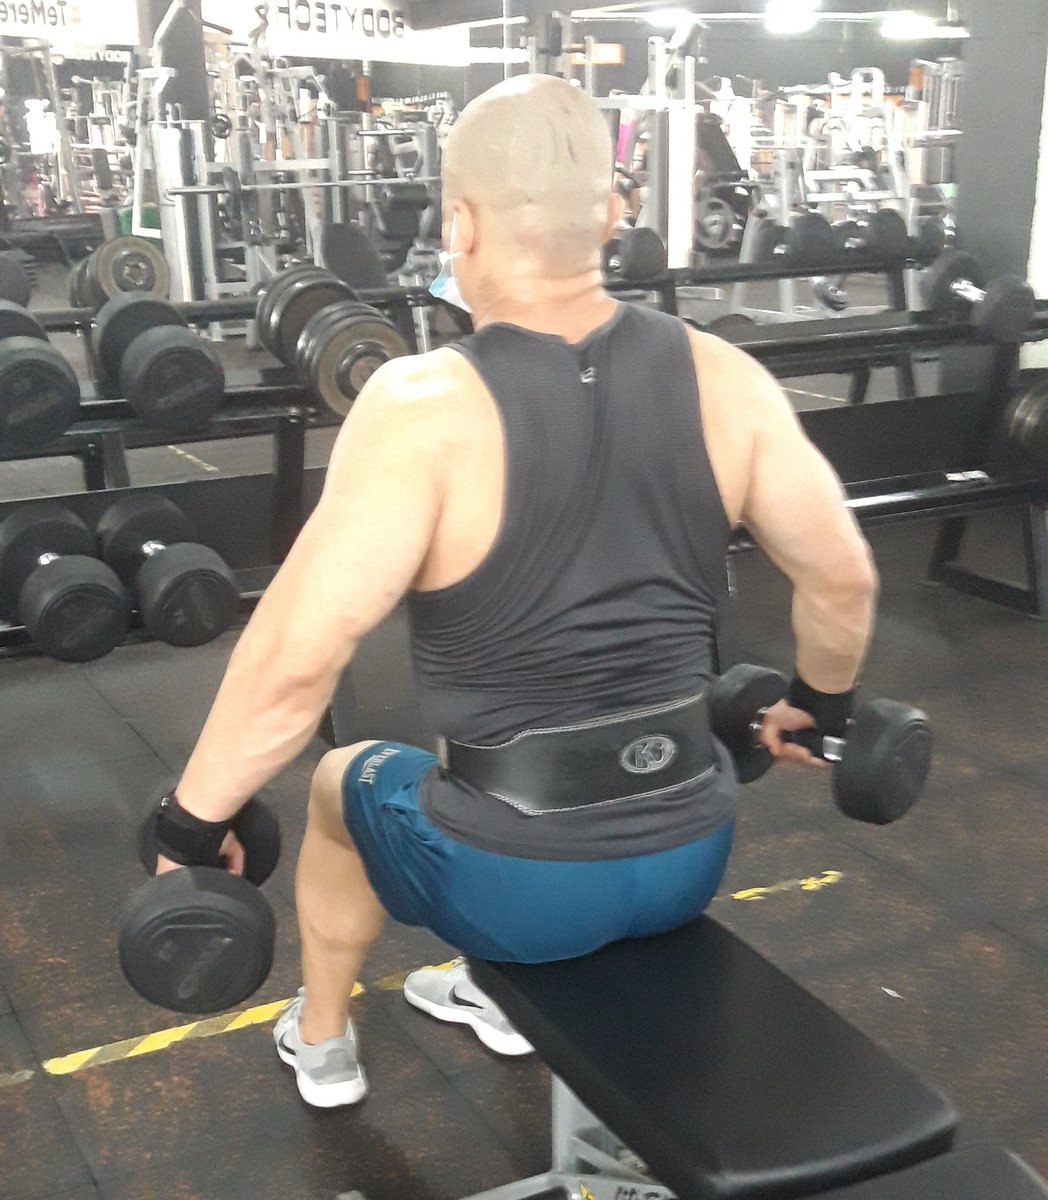 It's simple work hard and be consistent💪💪💪💪💪 Es simple trabajar duro y ser consistente💪💪💪💪💪  #gym #muscle #motivation #discipline #fitness #happy #shoulders https://t.co/jirVwYW5I5